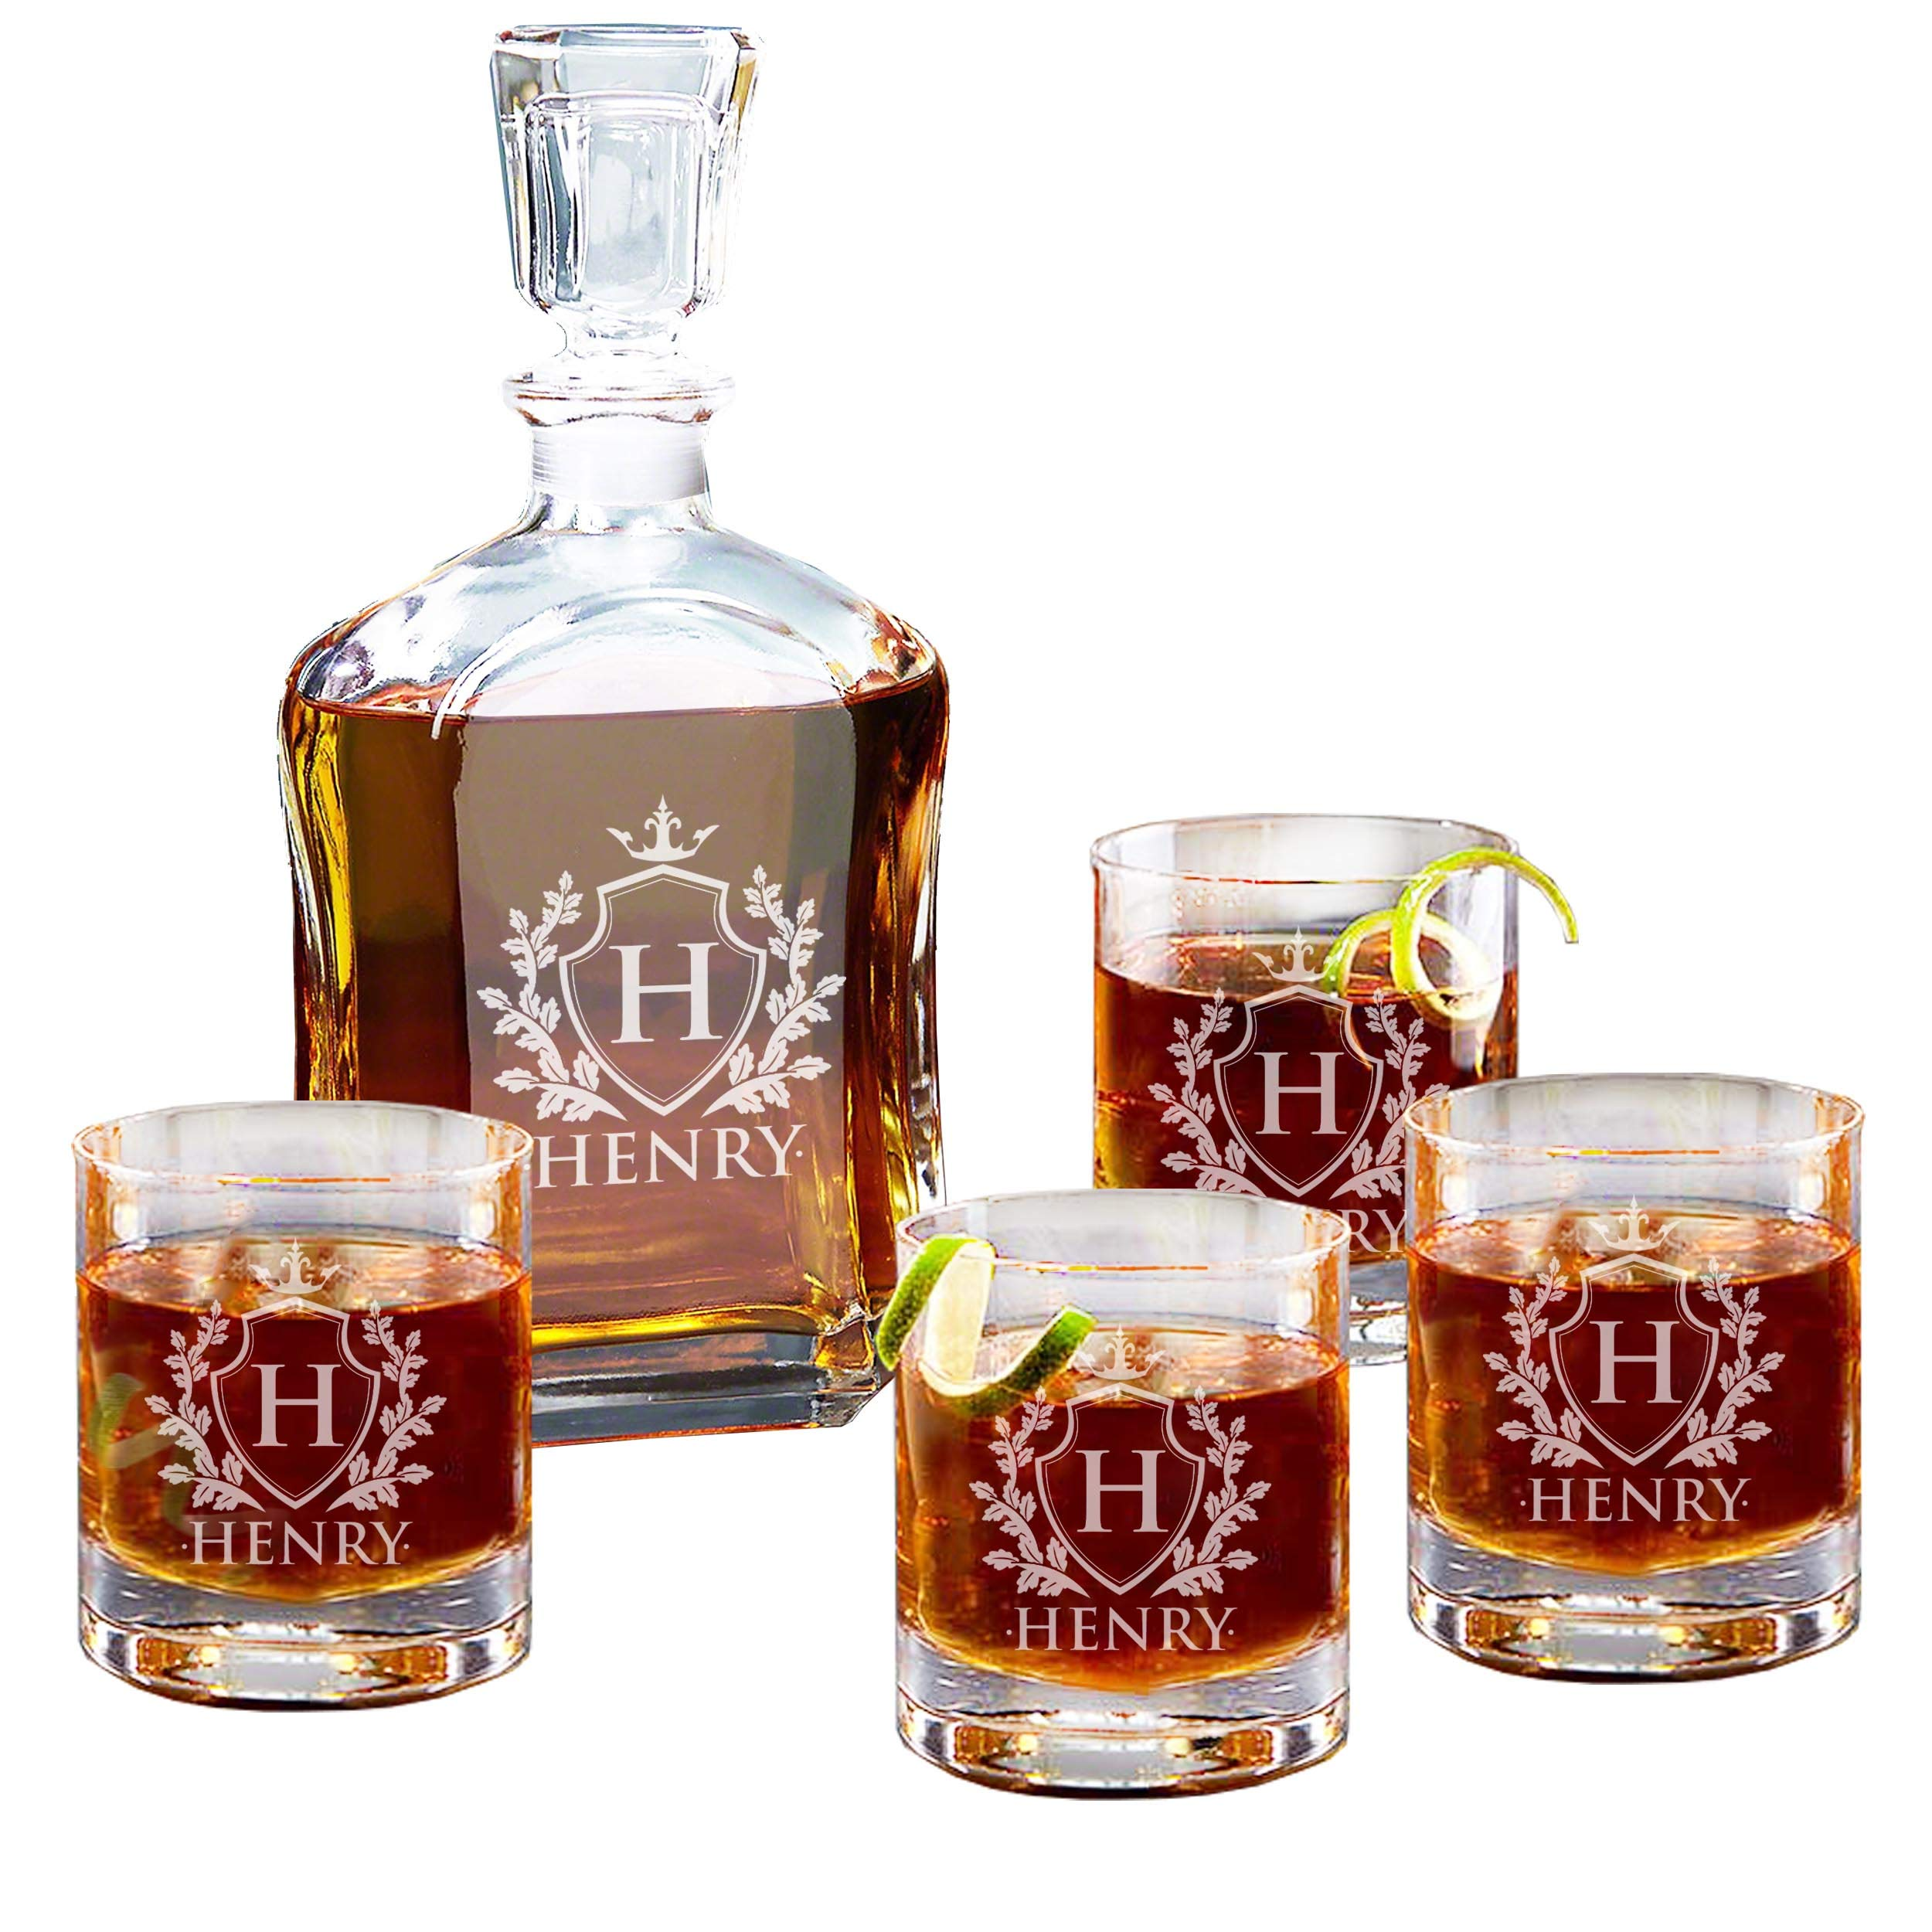 Personalized Custom Engraved Whiskey Decanter Set - Decanter and 4 Glasses Gifts Set - Custom Engraved Monogrammed with Shield Desgin by My Personal Memories